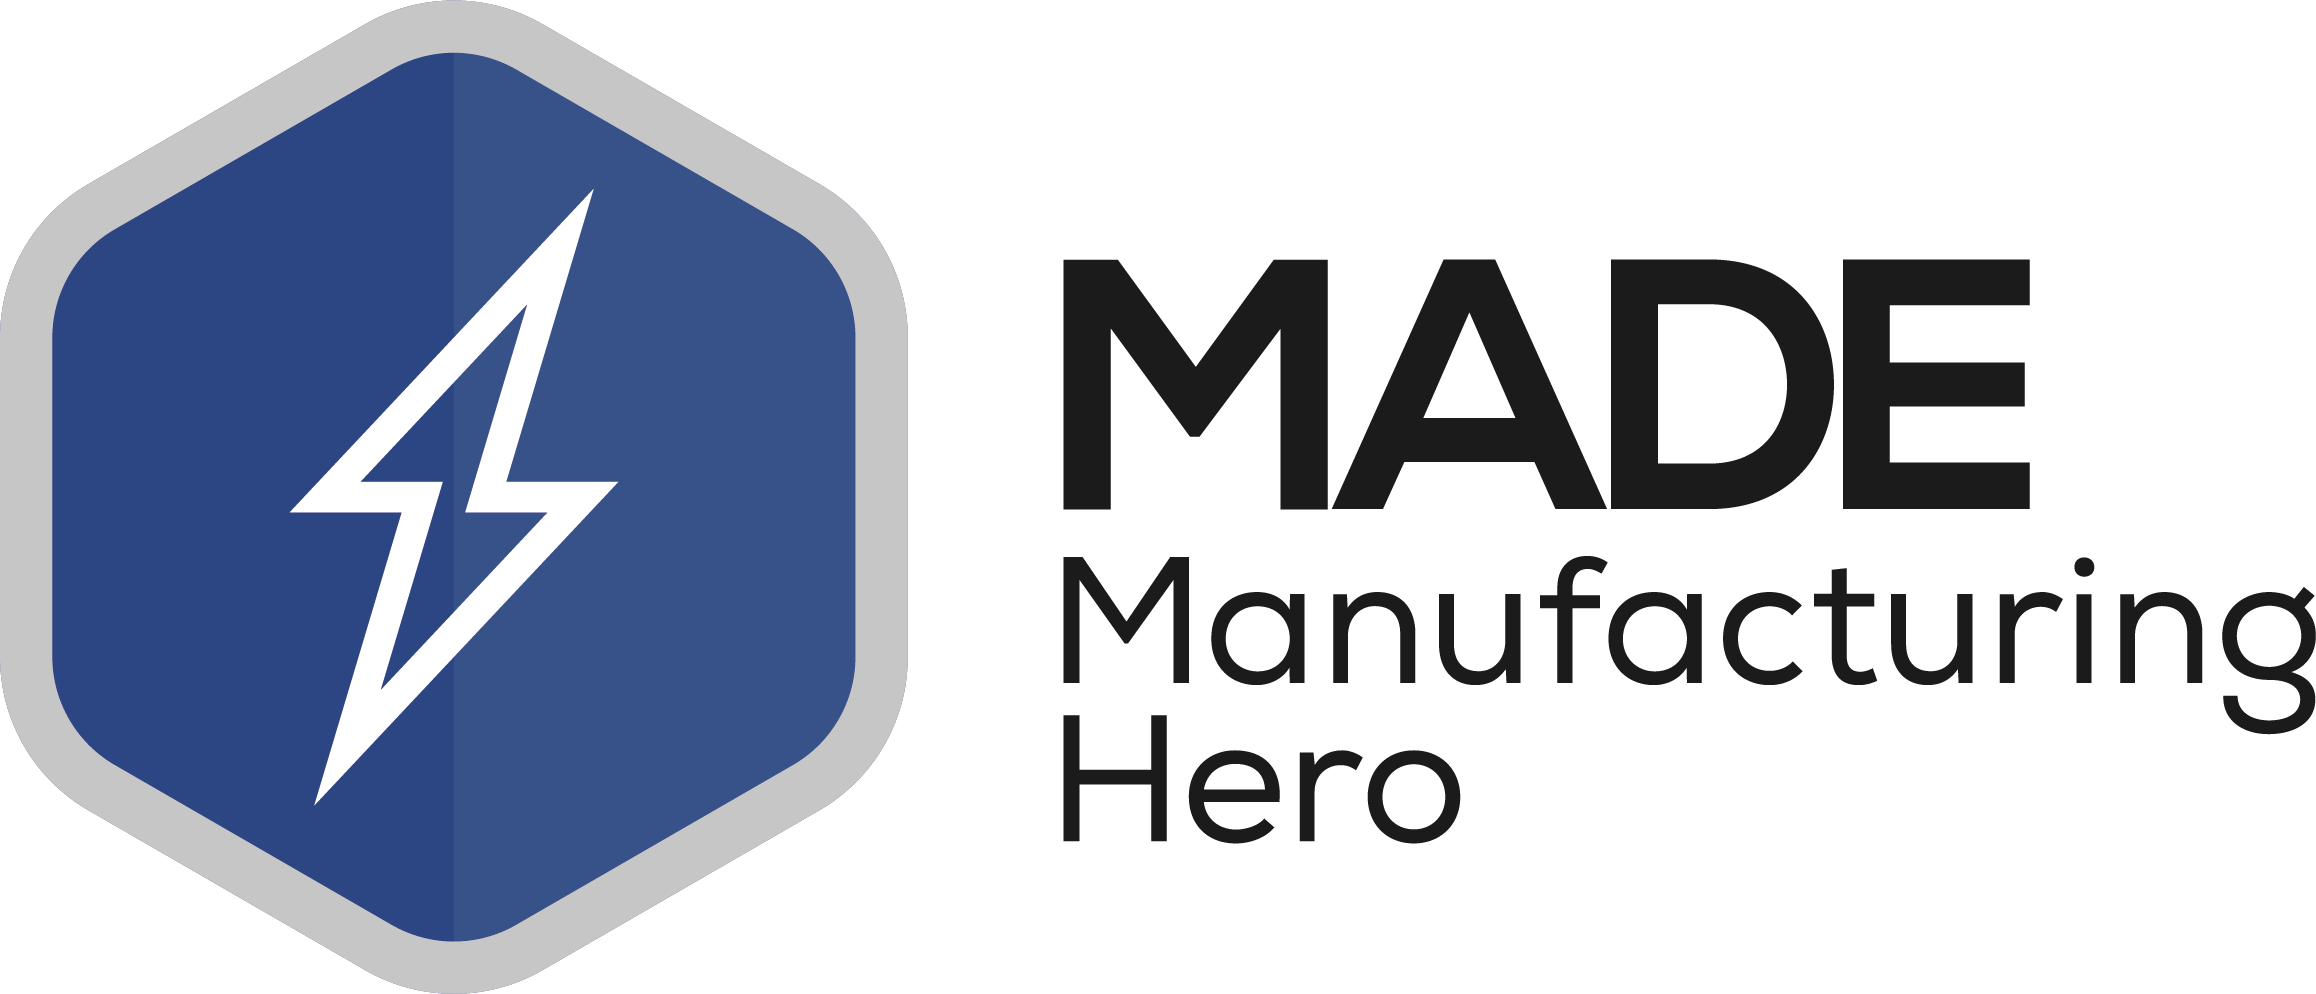 Made Manufacturing Hero